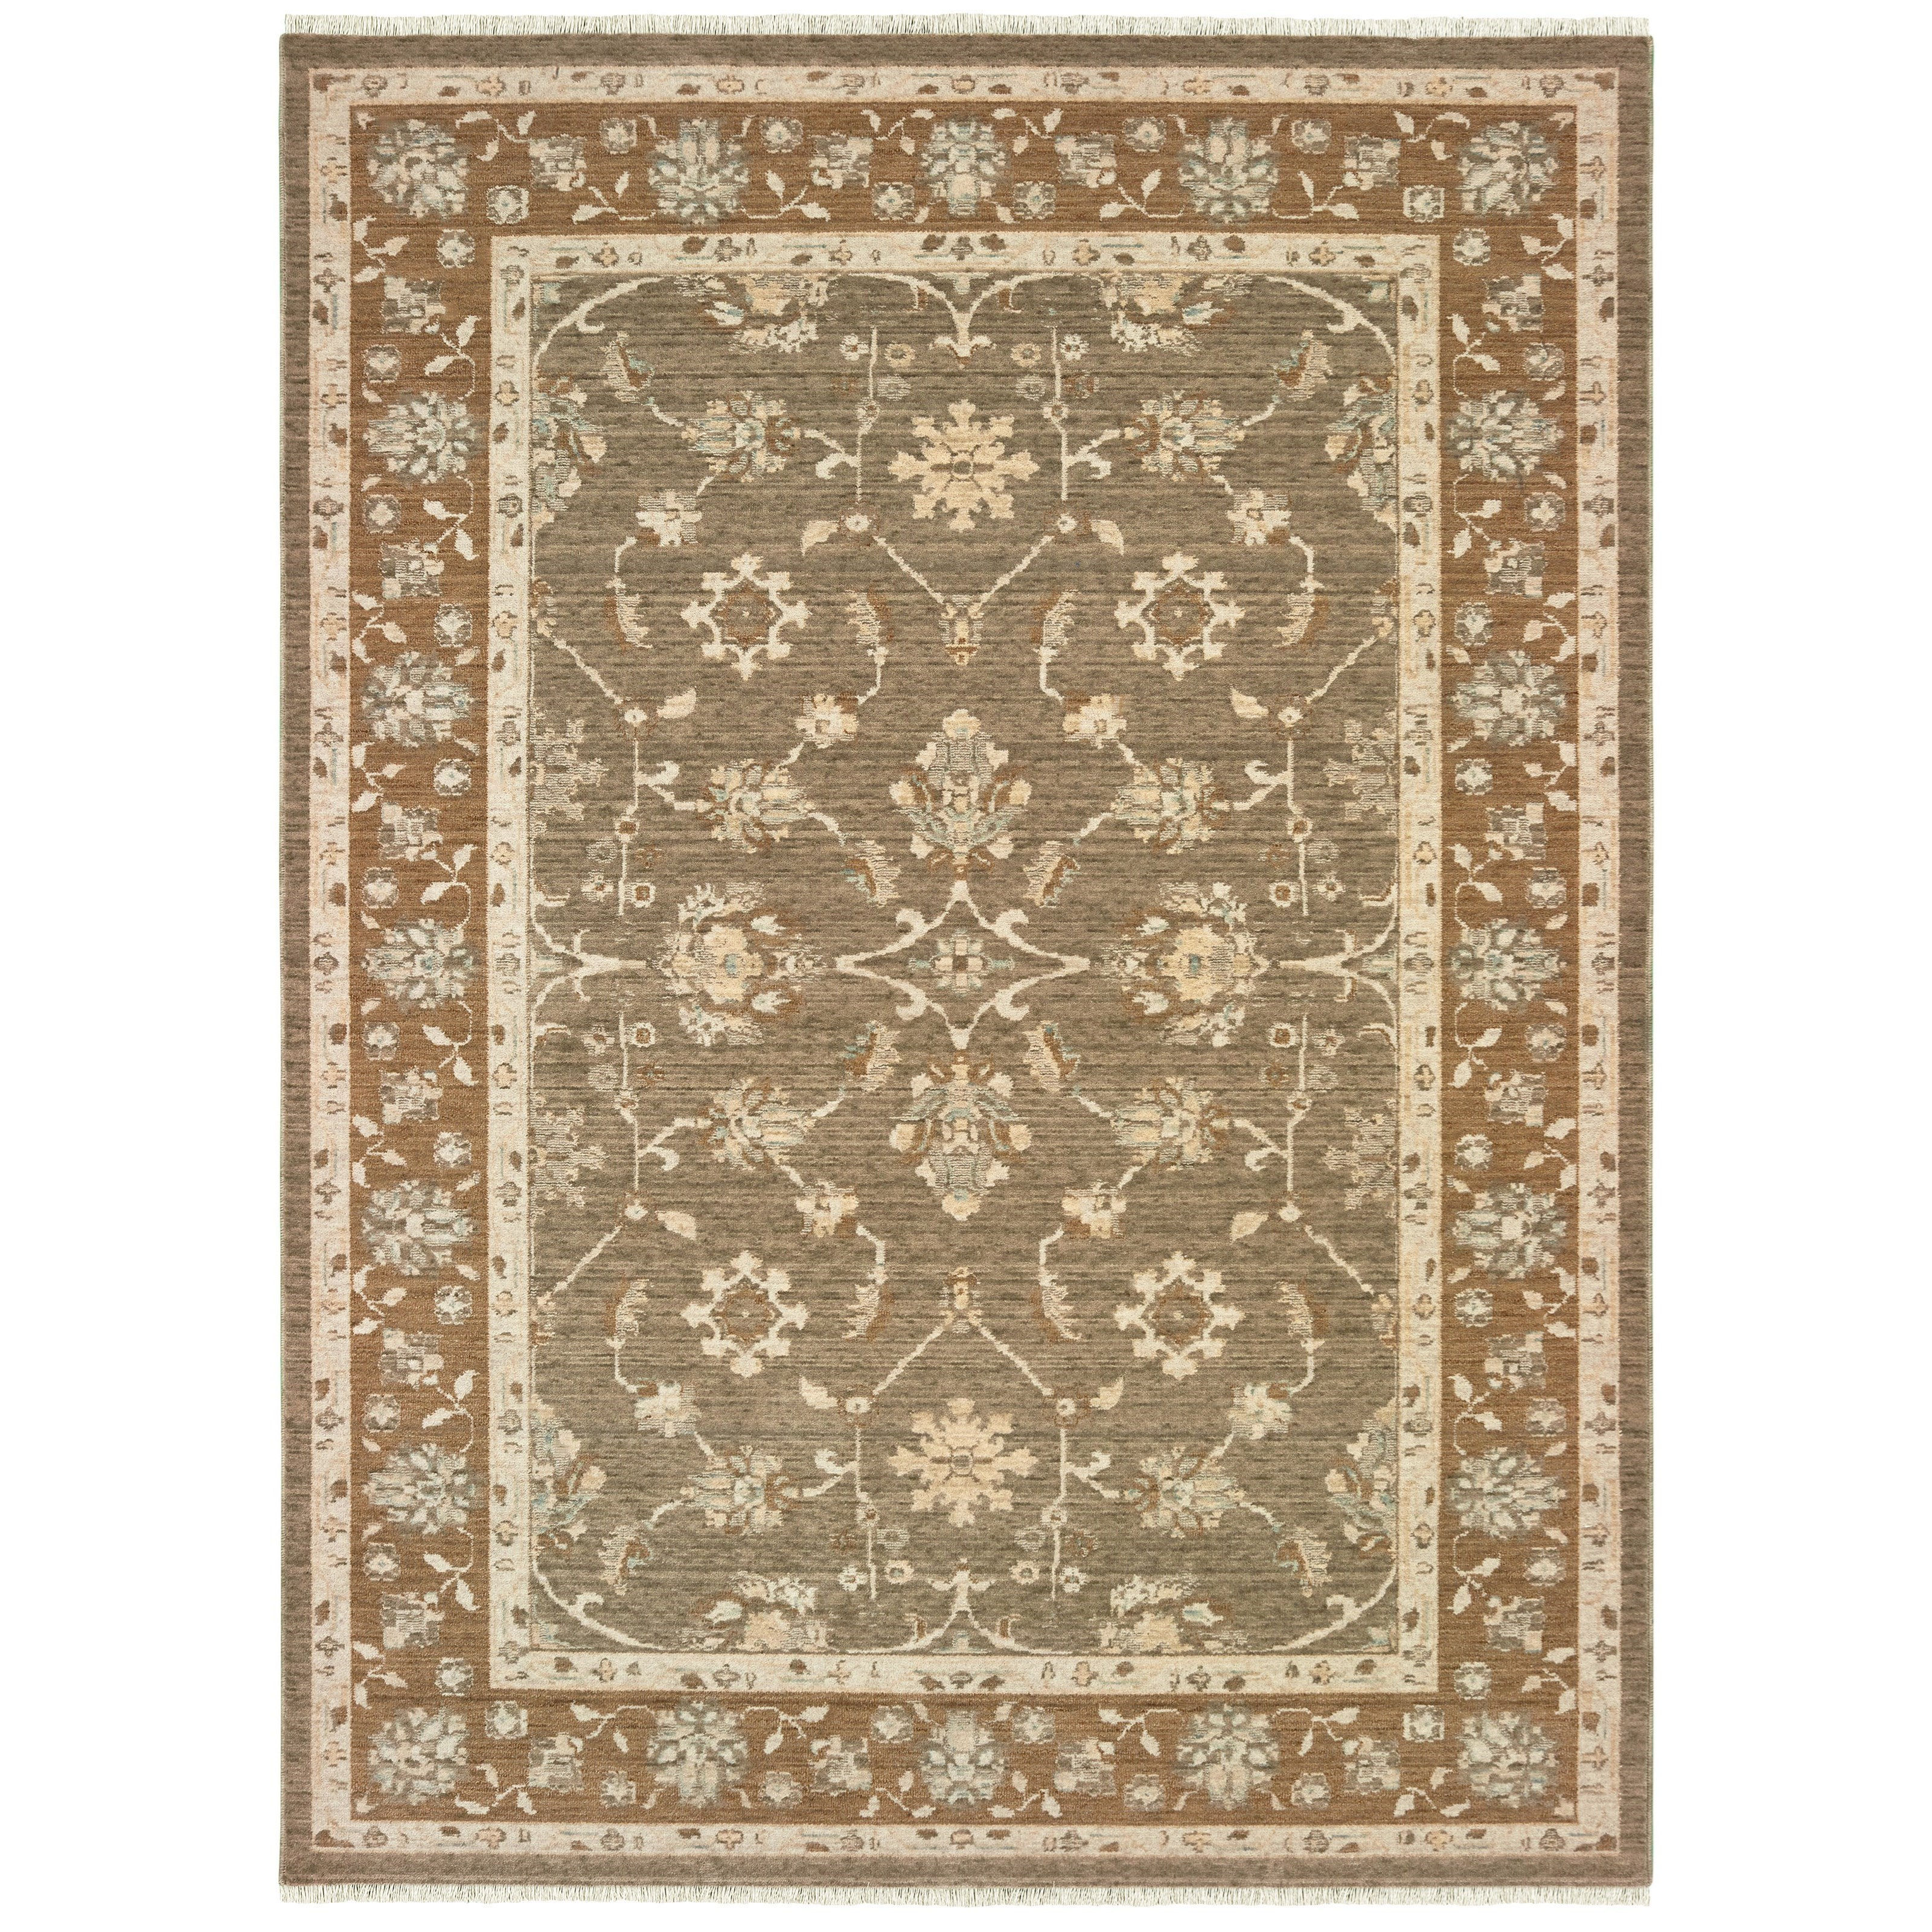 "Anatolia 5' 3"" X  7' 6"" Rectangle Rug by Oriental Weavers at Darvin Furniture"